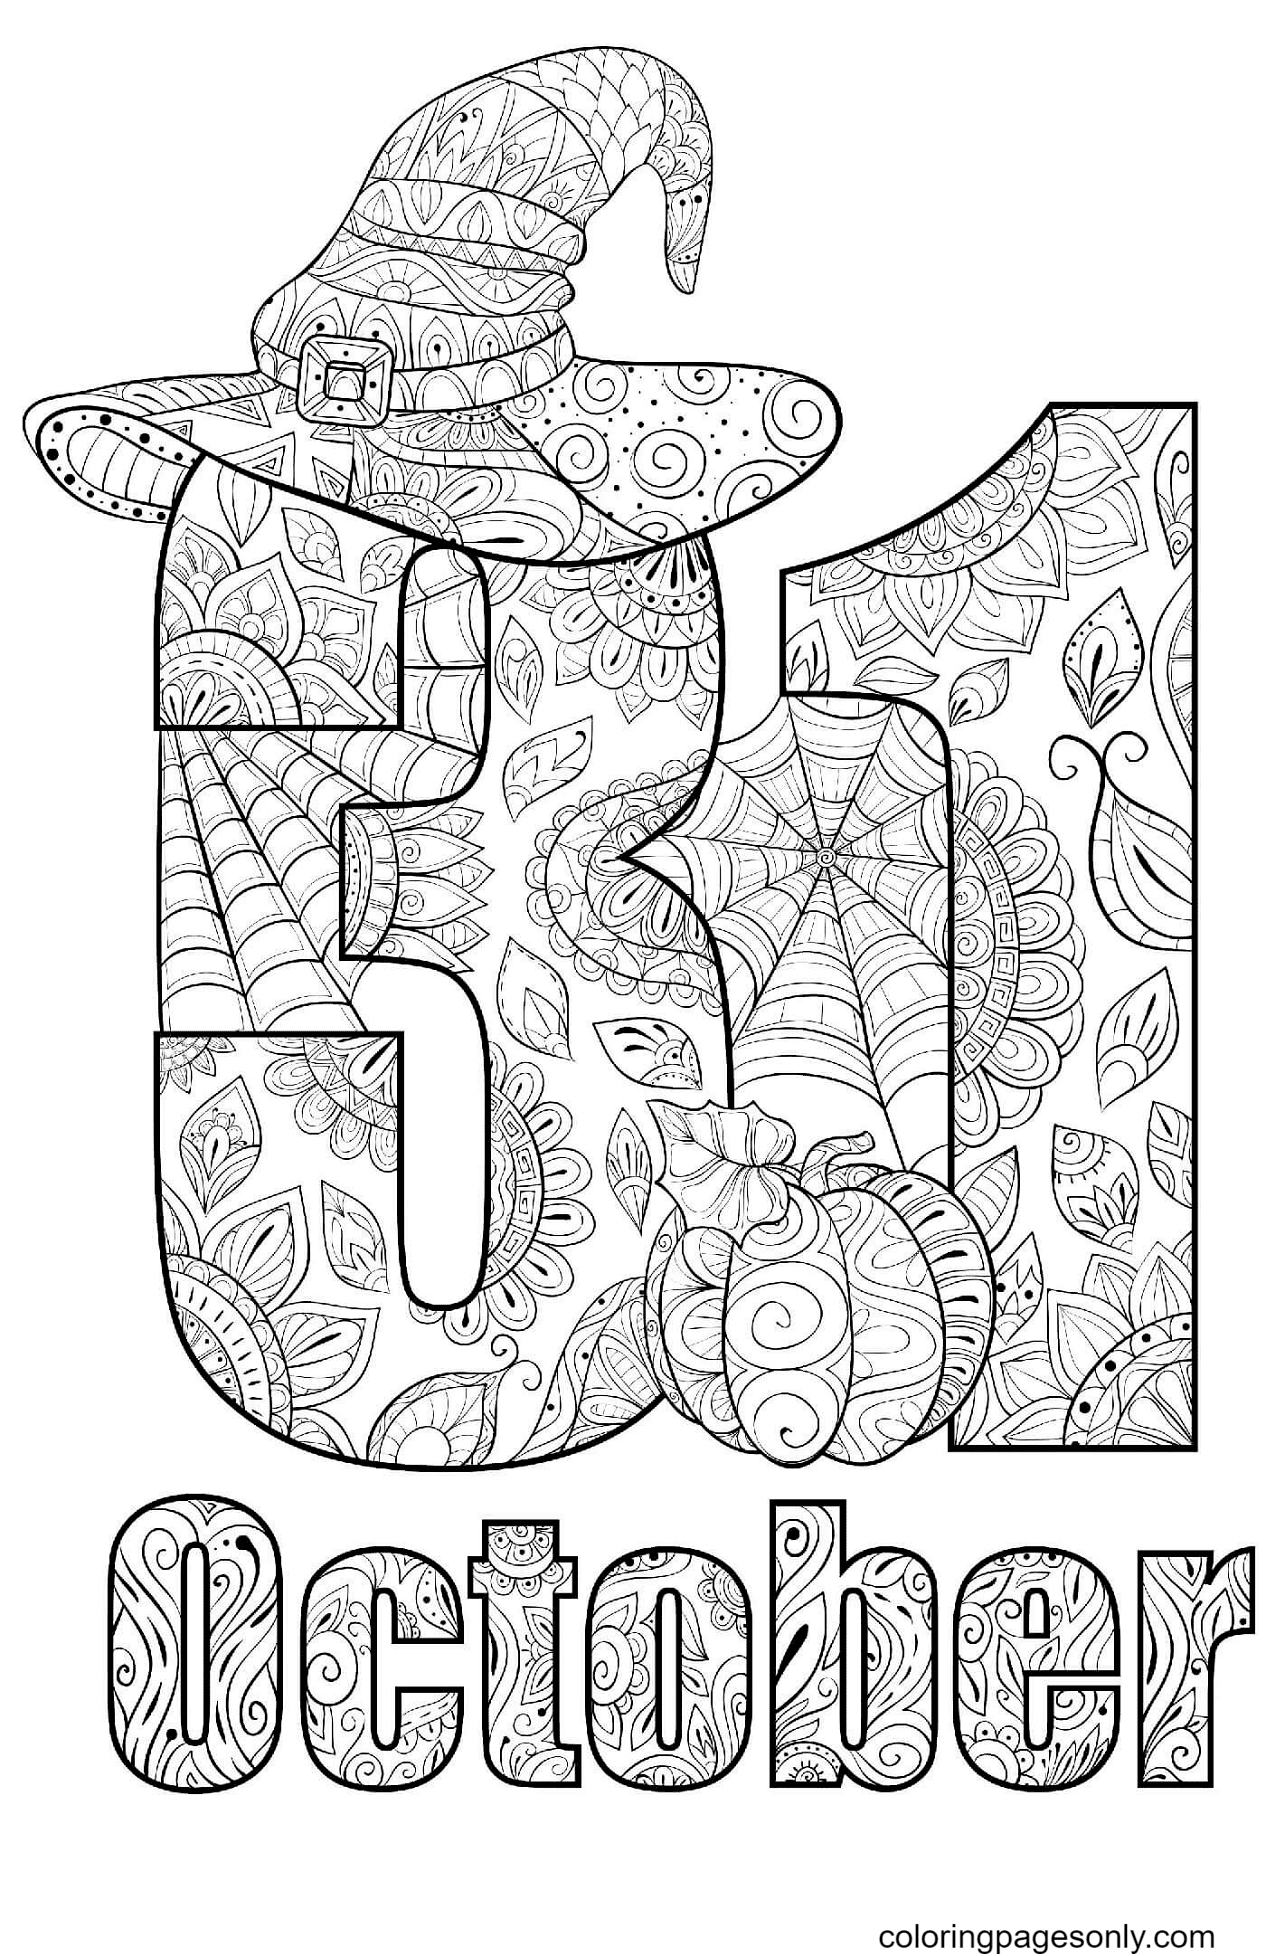 Halloween 31 October Coloring Page